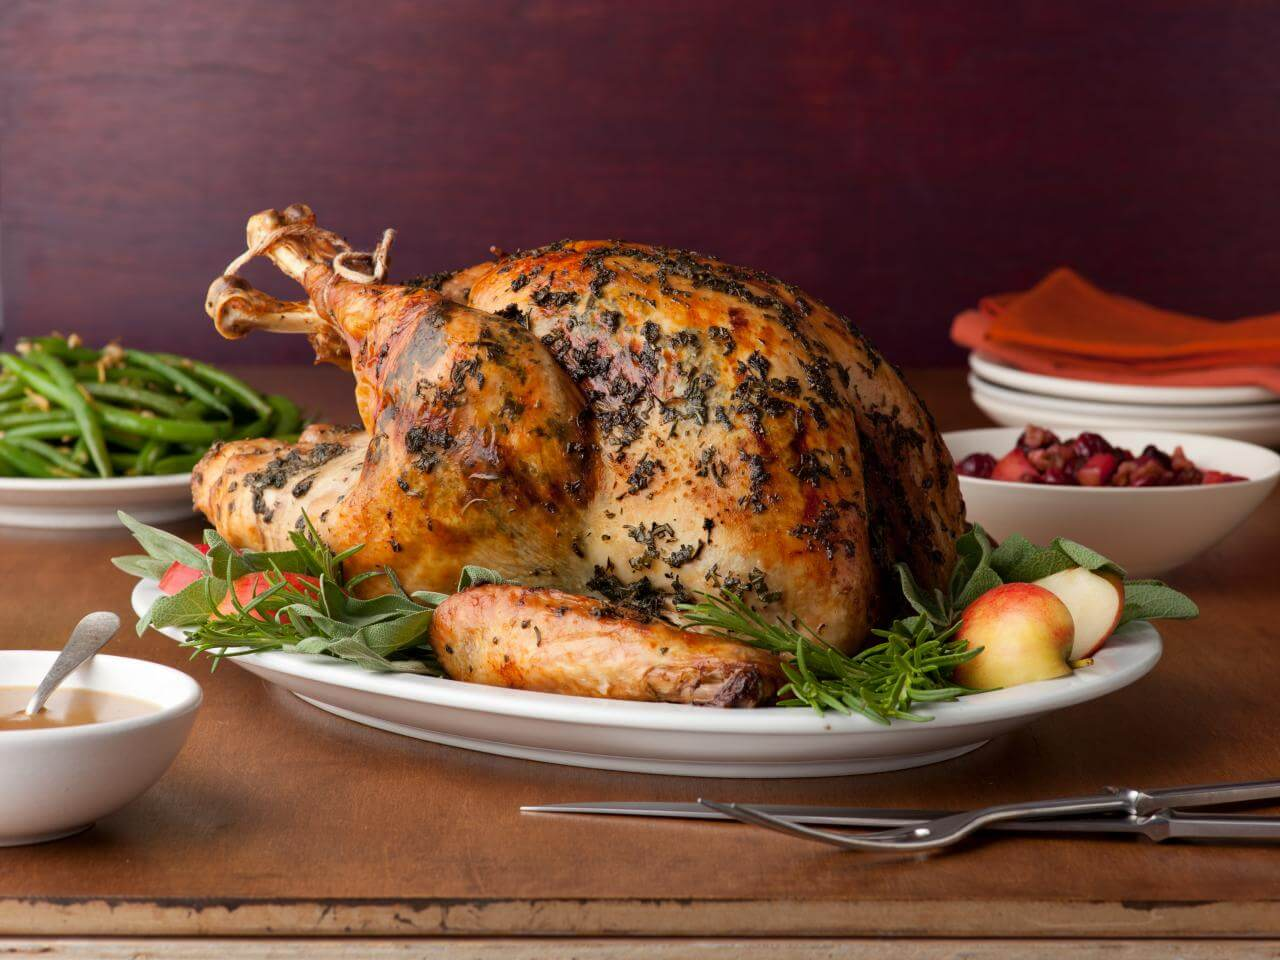 A turkey dinner is traditional for Thanksgiving dinner